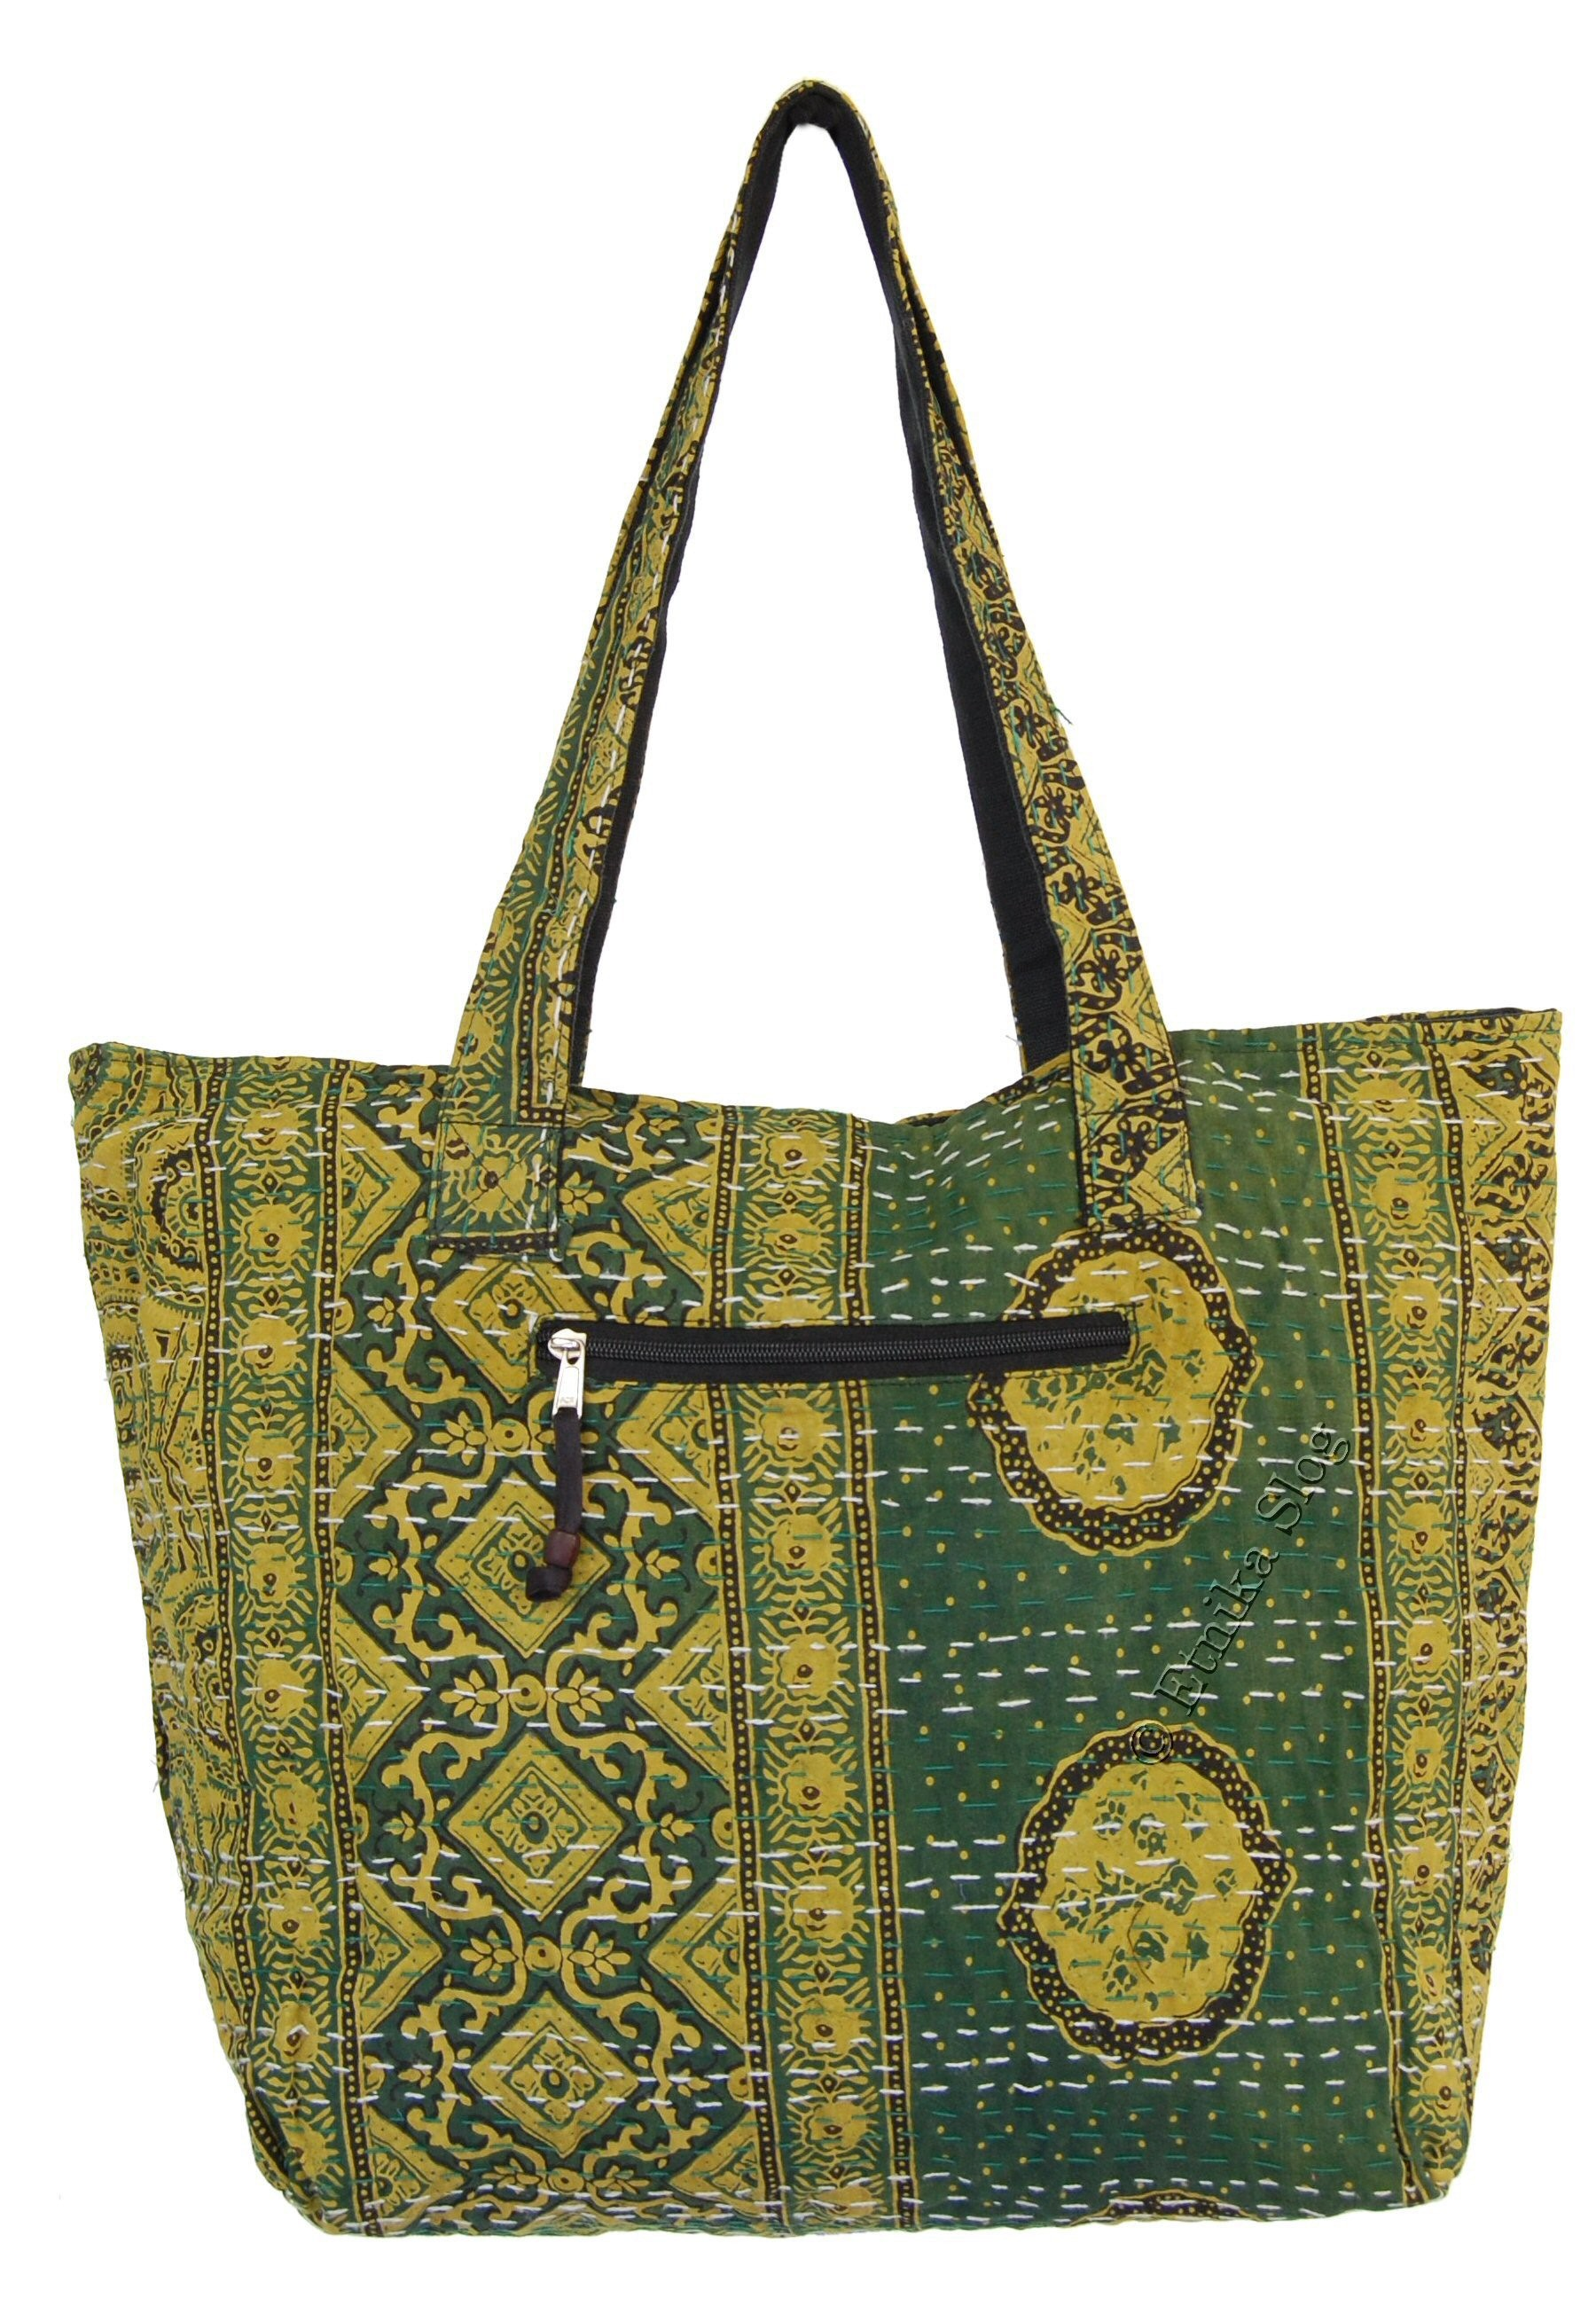 SHOULDER BAGS BS-IN73 - Oriente Import S.r.l.